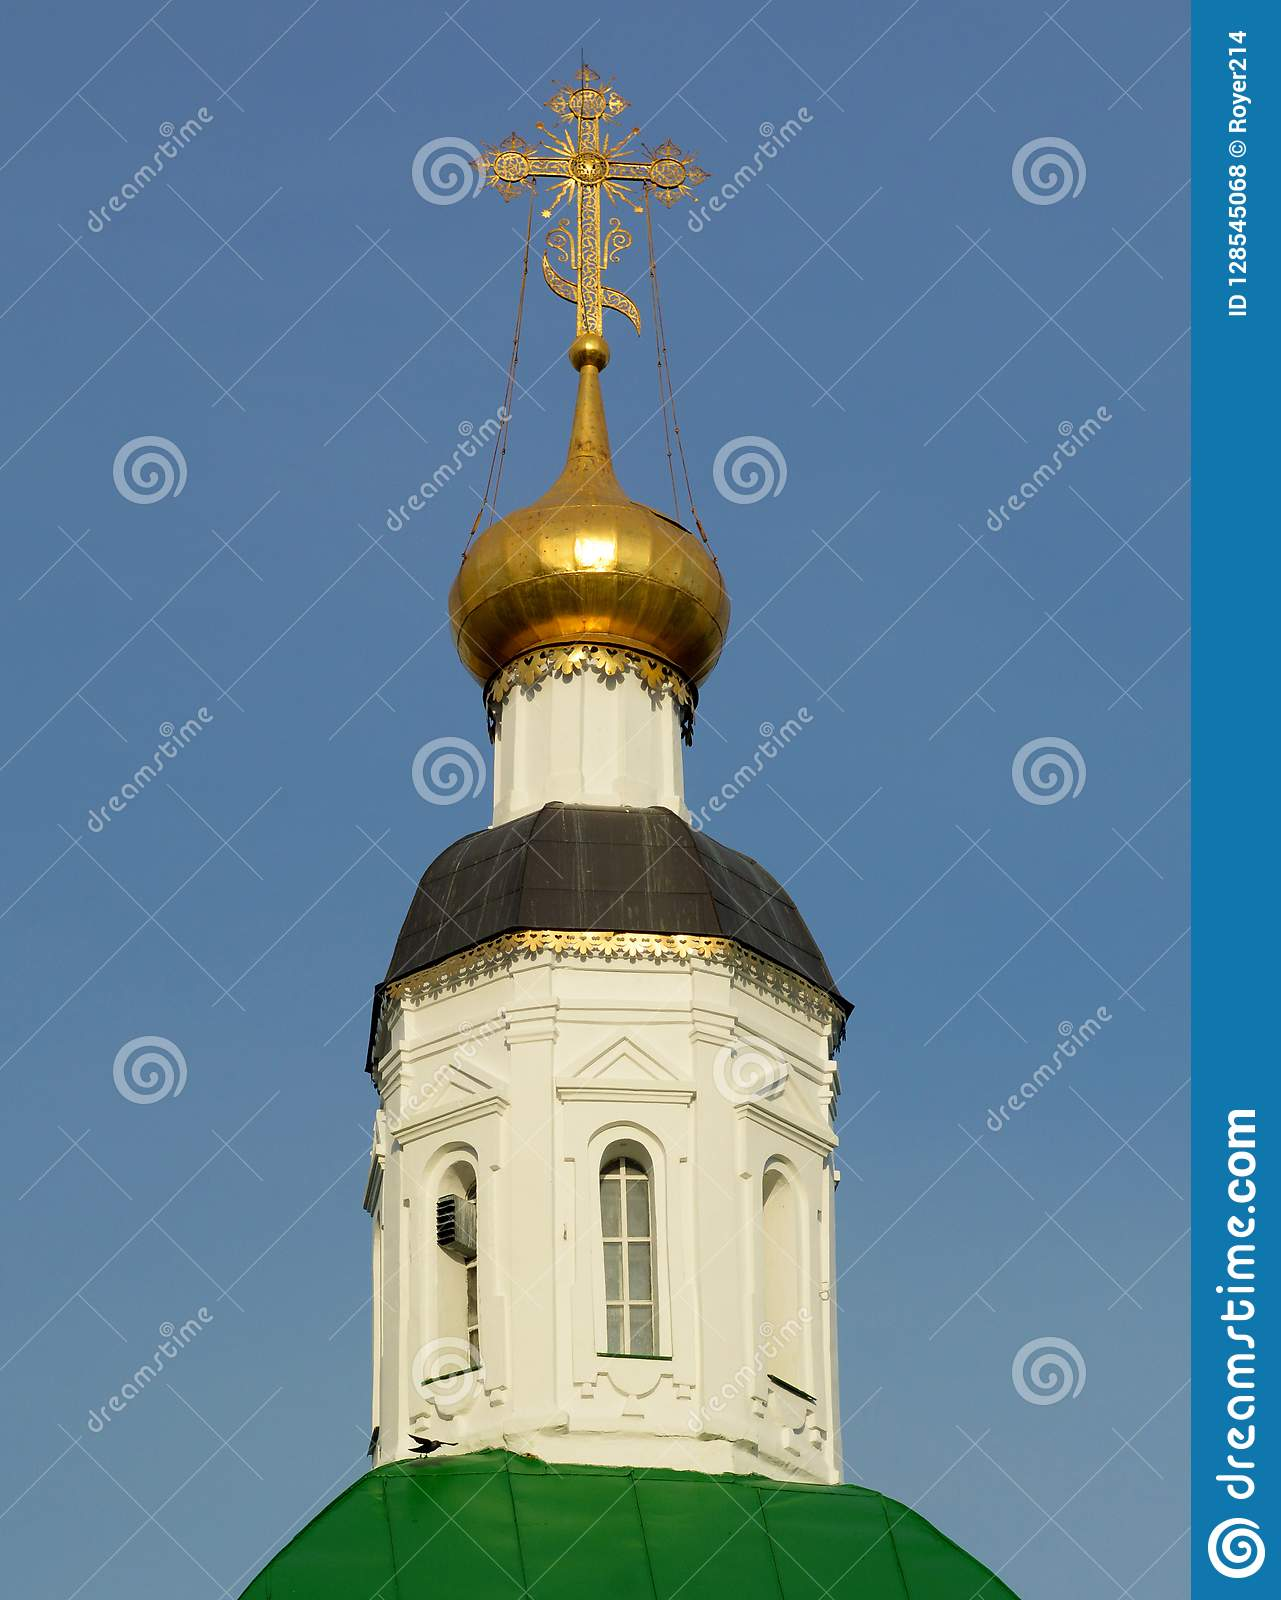 Dome of the Church in Vladimir